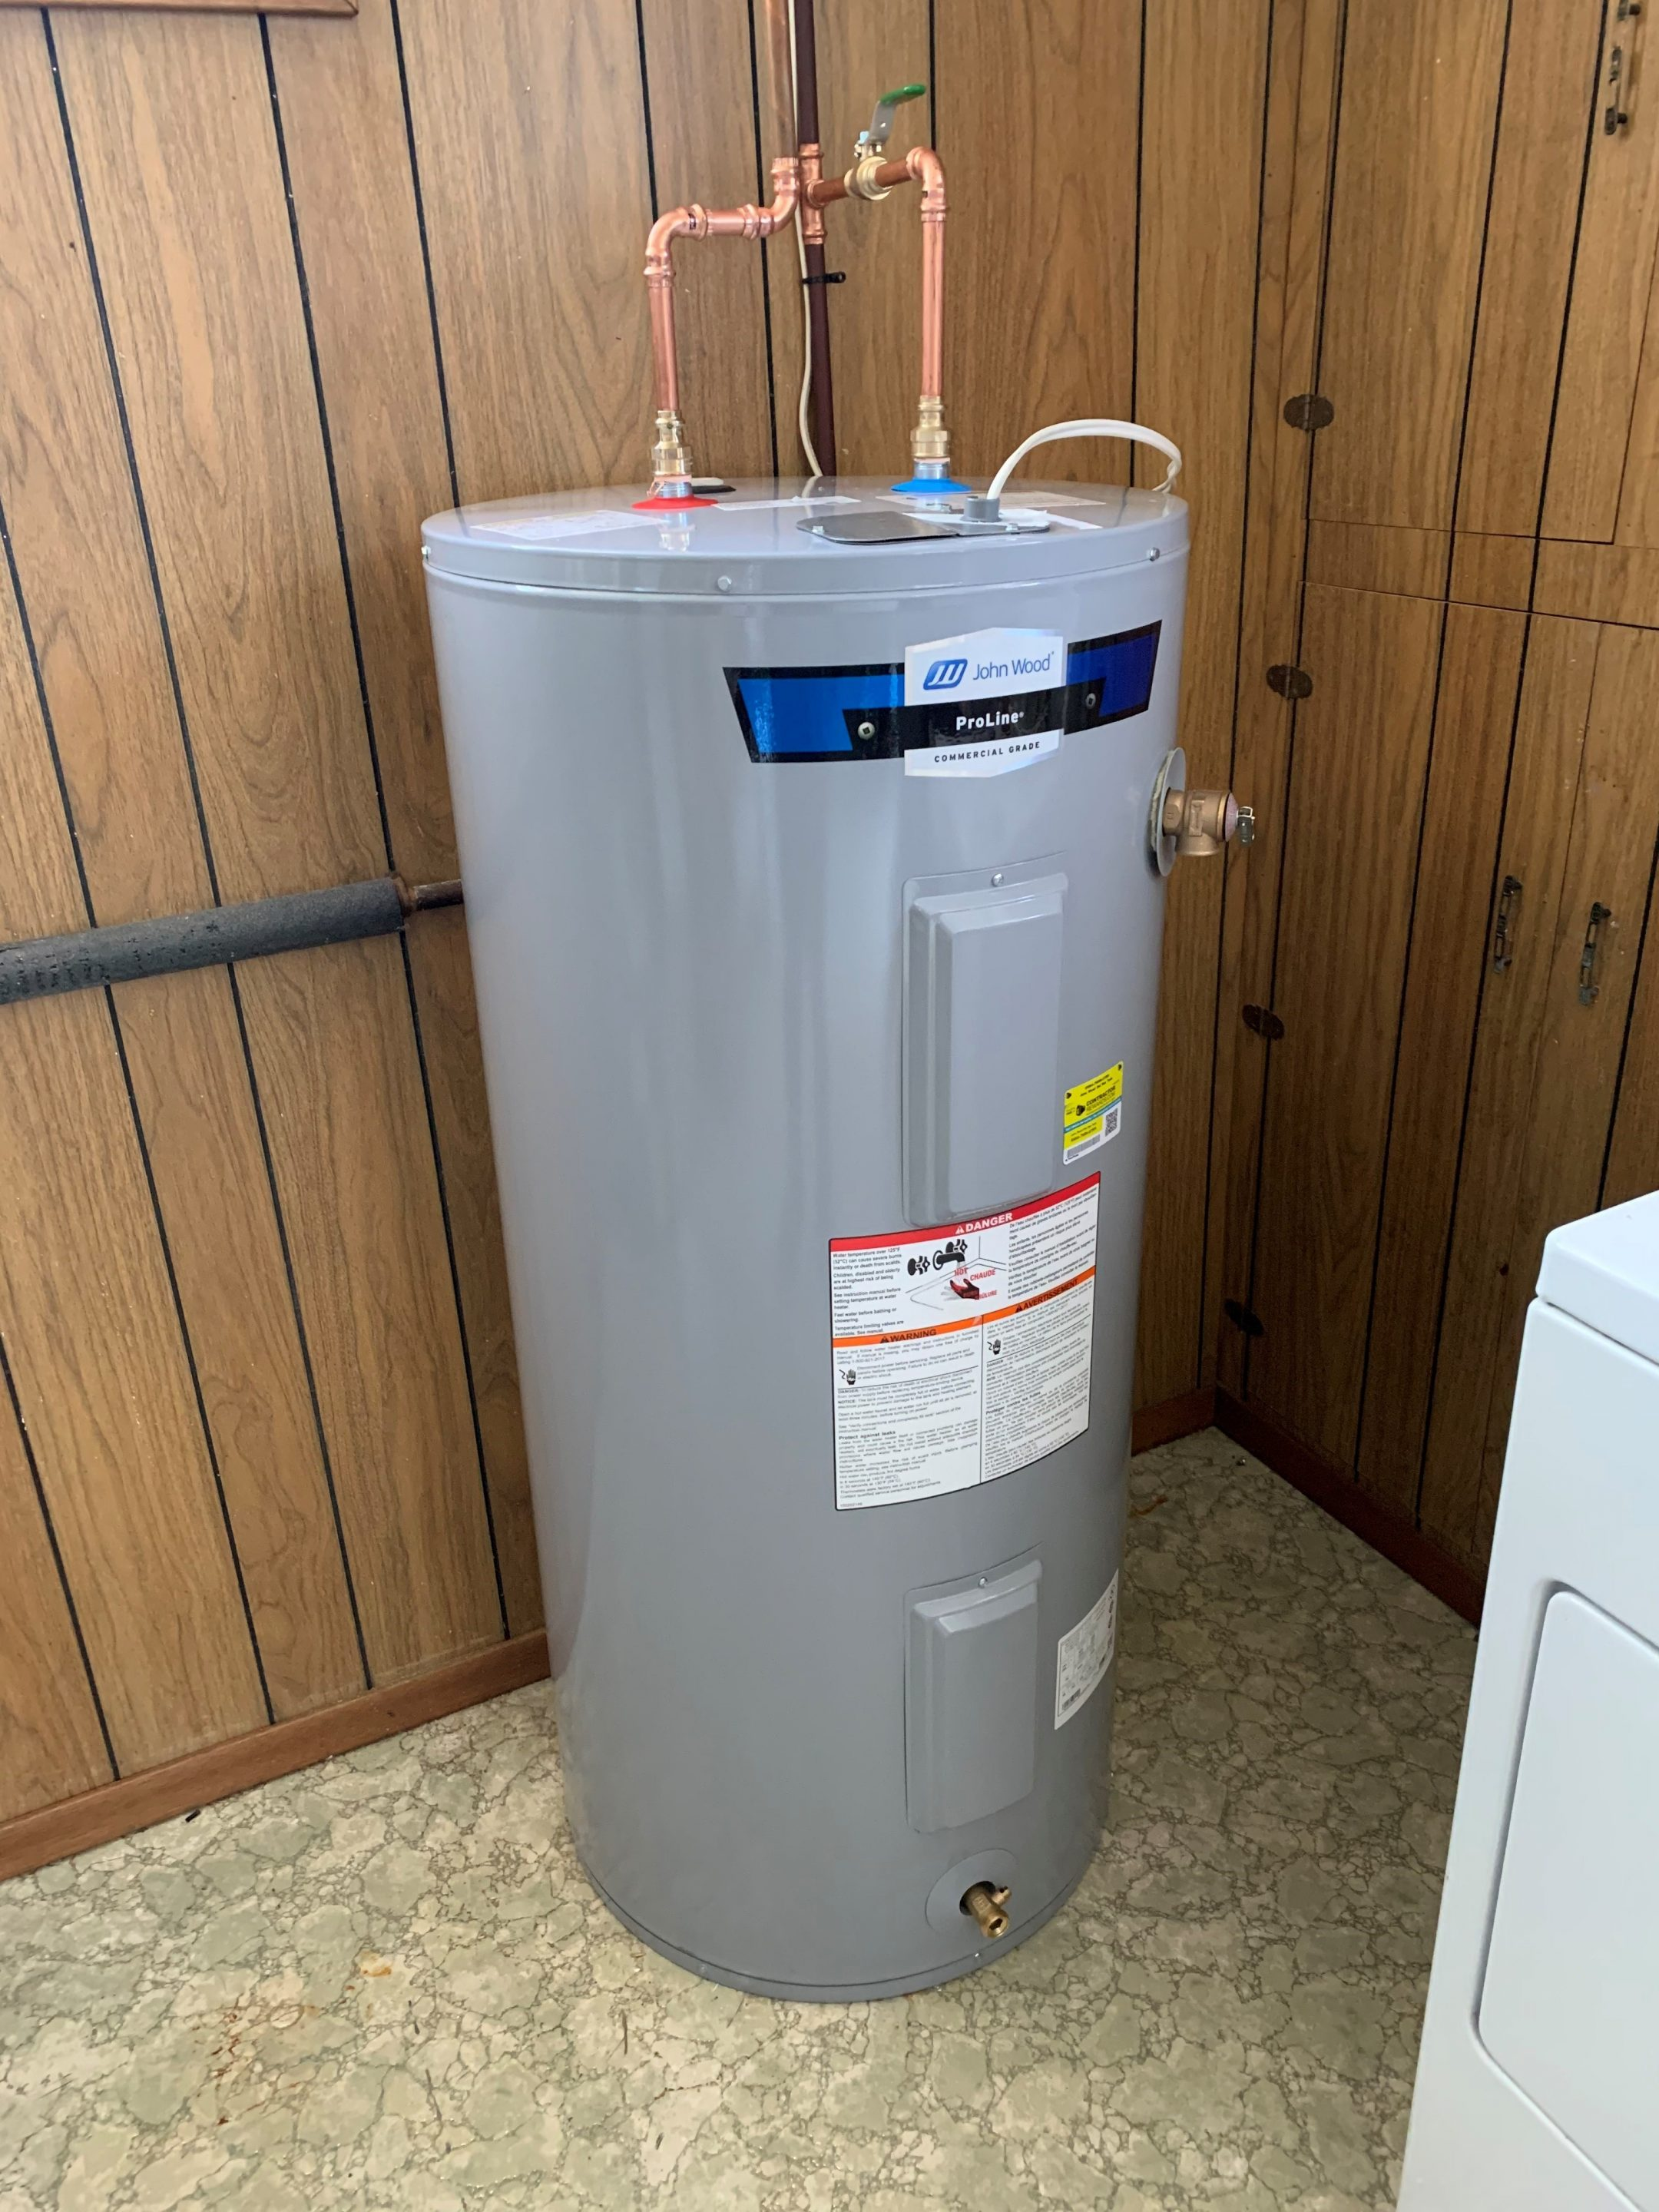 Installing a water heater